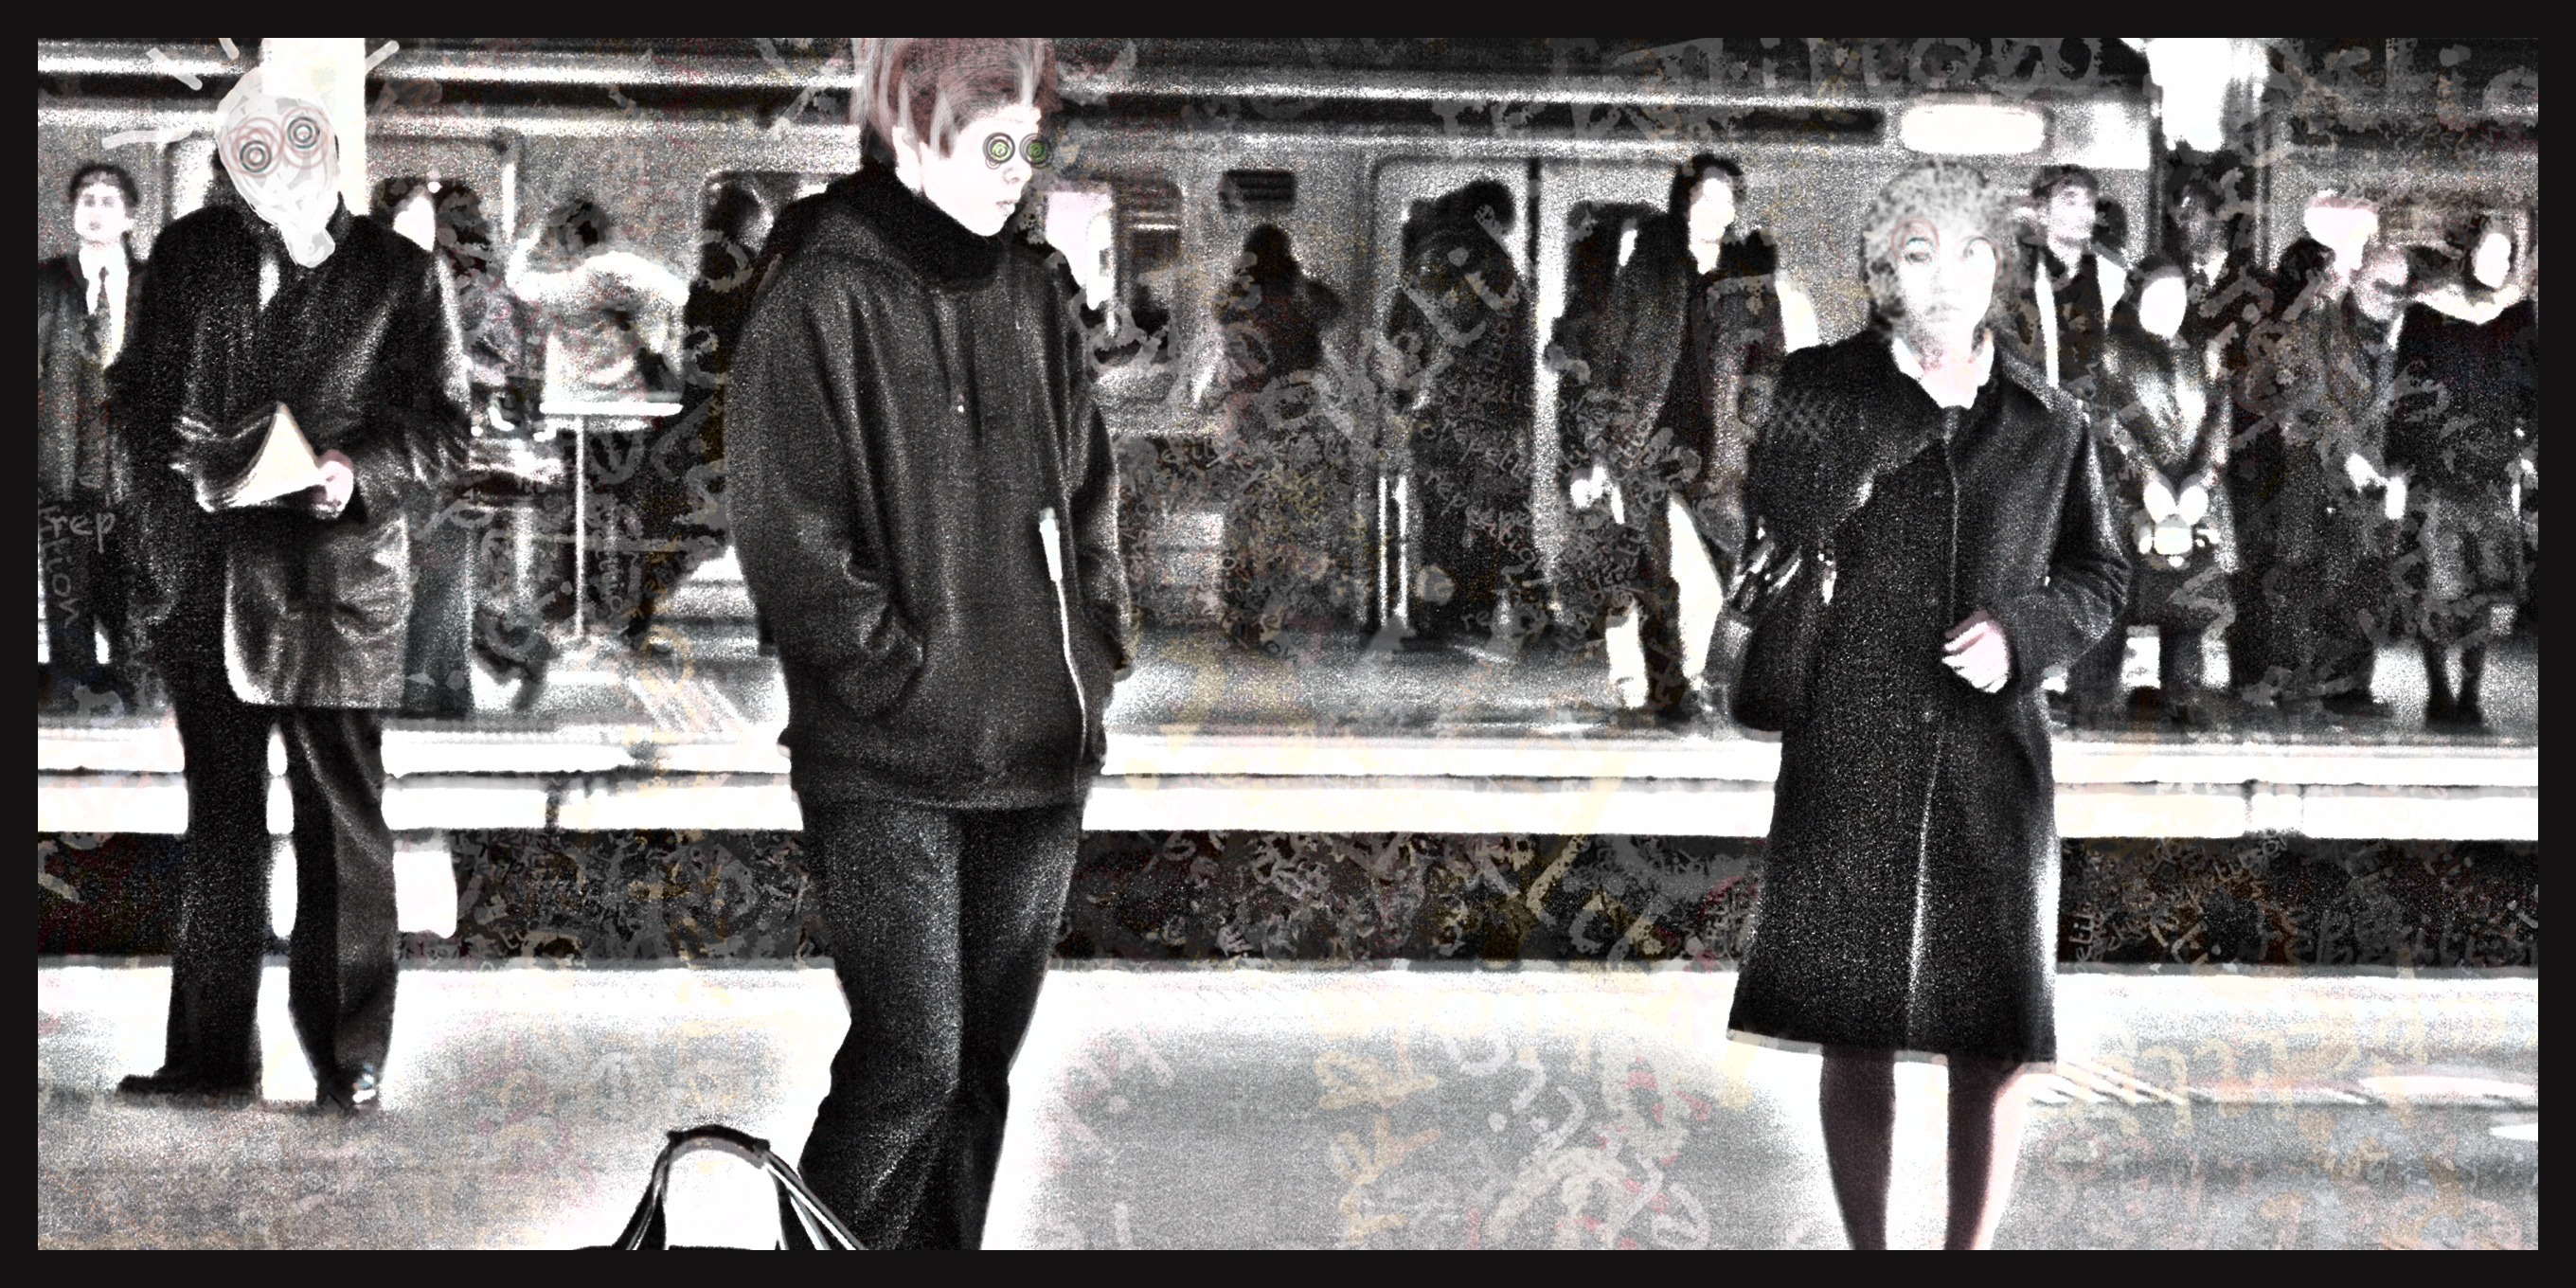 At the Station - Digital Art by Robert Jarrell